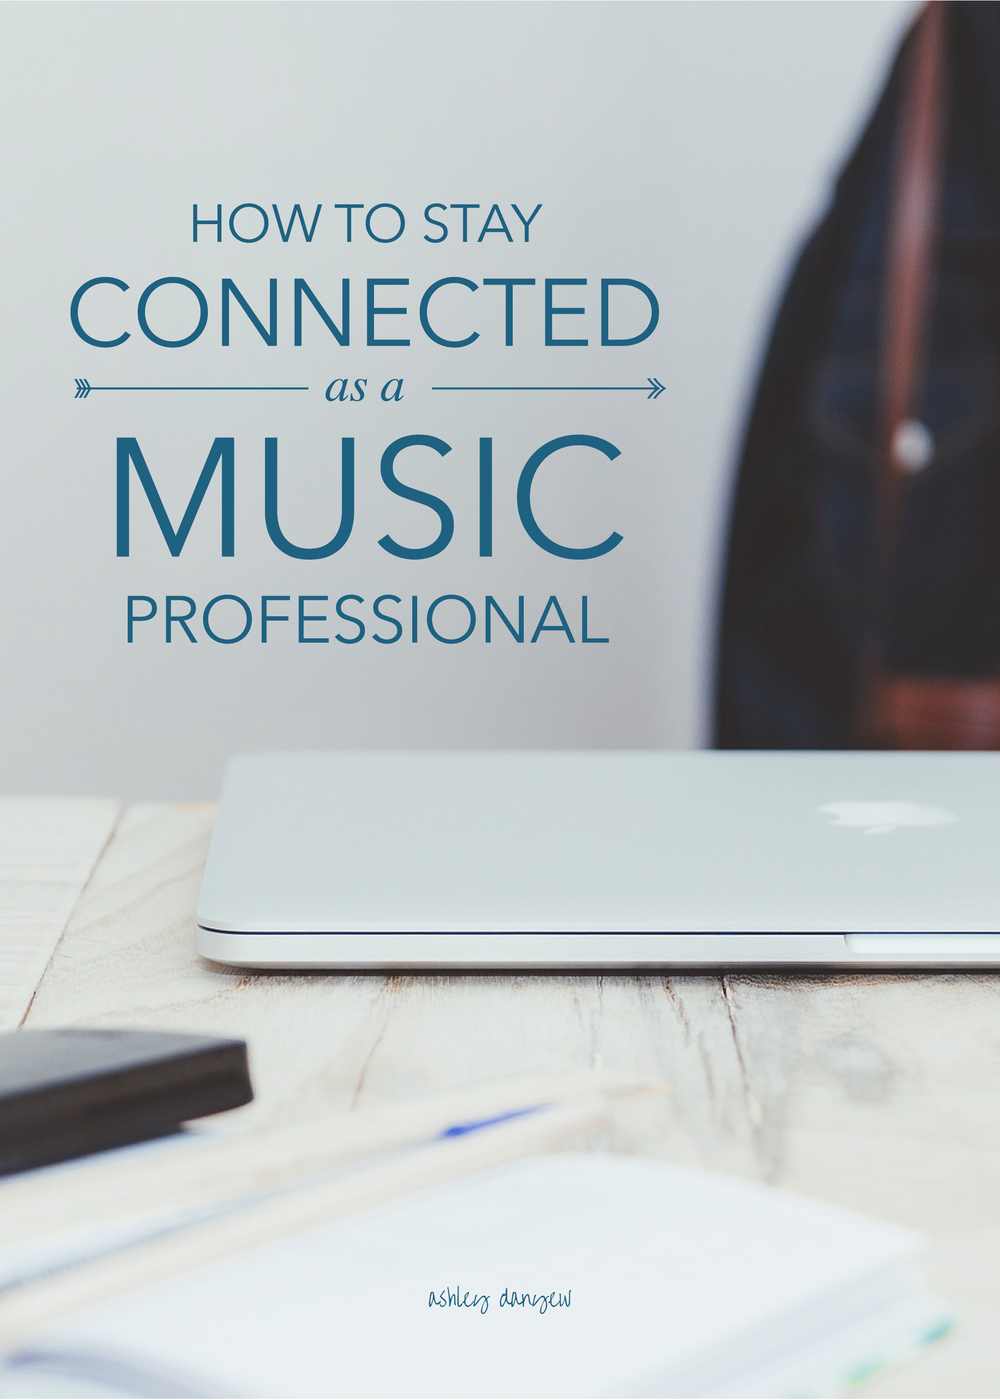 How-to-Stay-Connected-As-a-Music-Professional-01.png